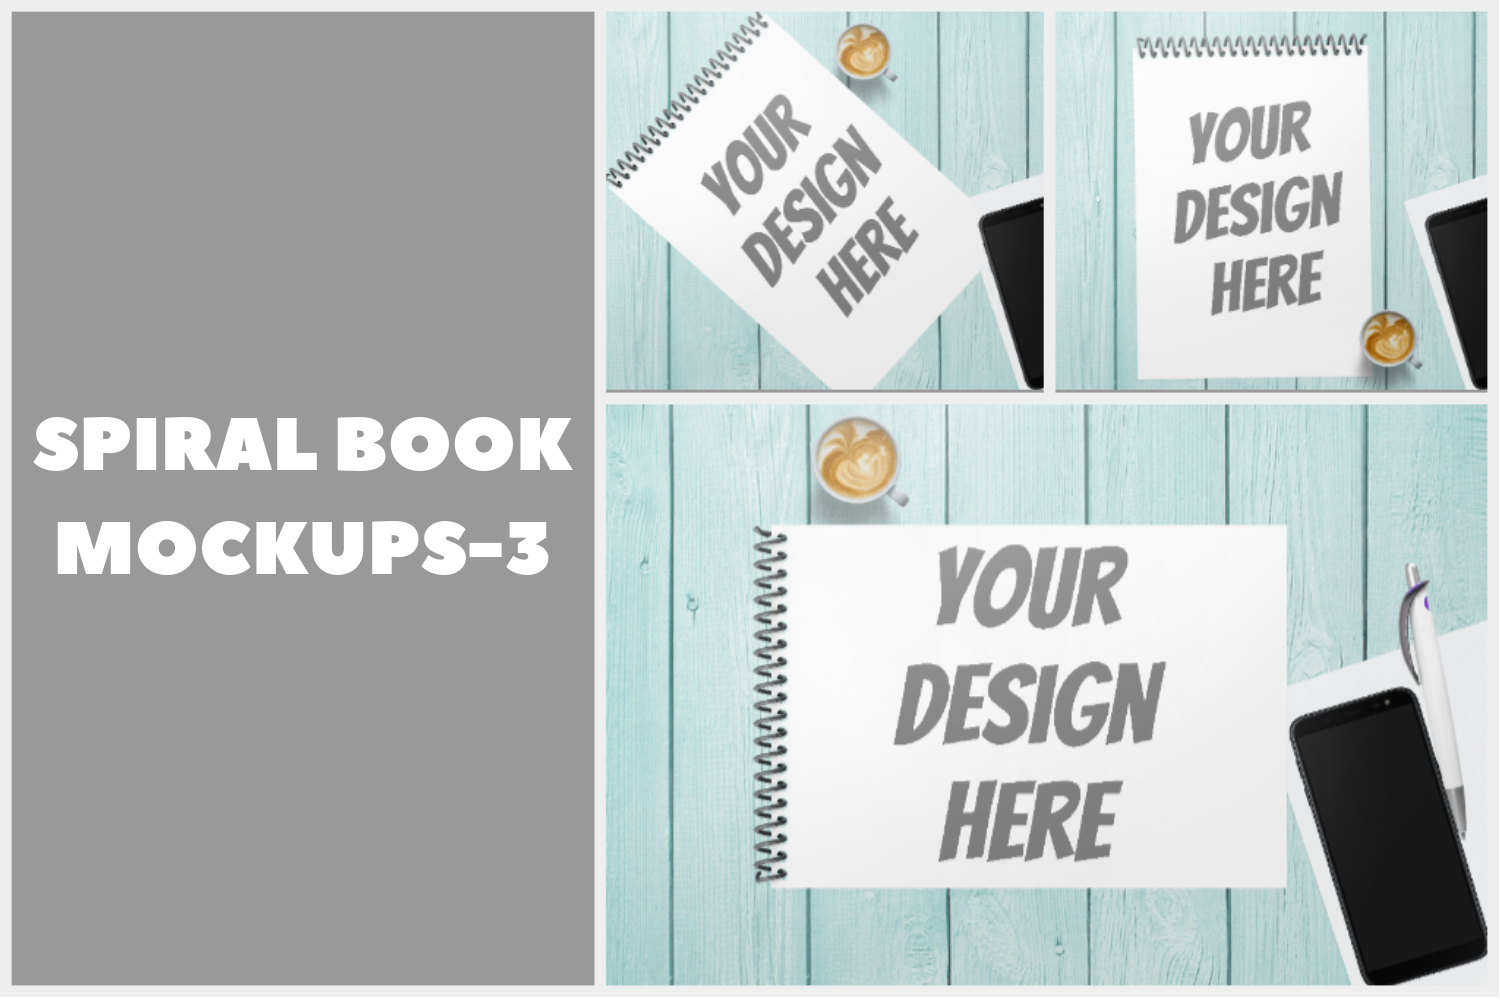 Spiral Note Book Mockup - 3 |PNG | W4000XH2667 example image 1